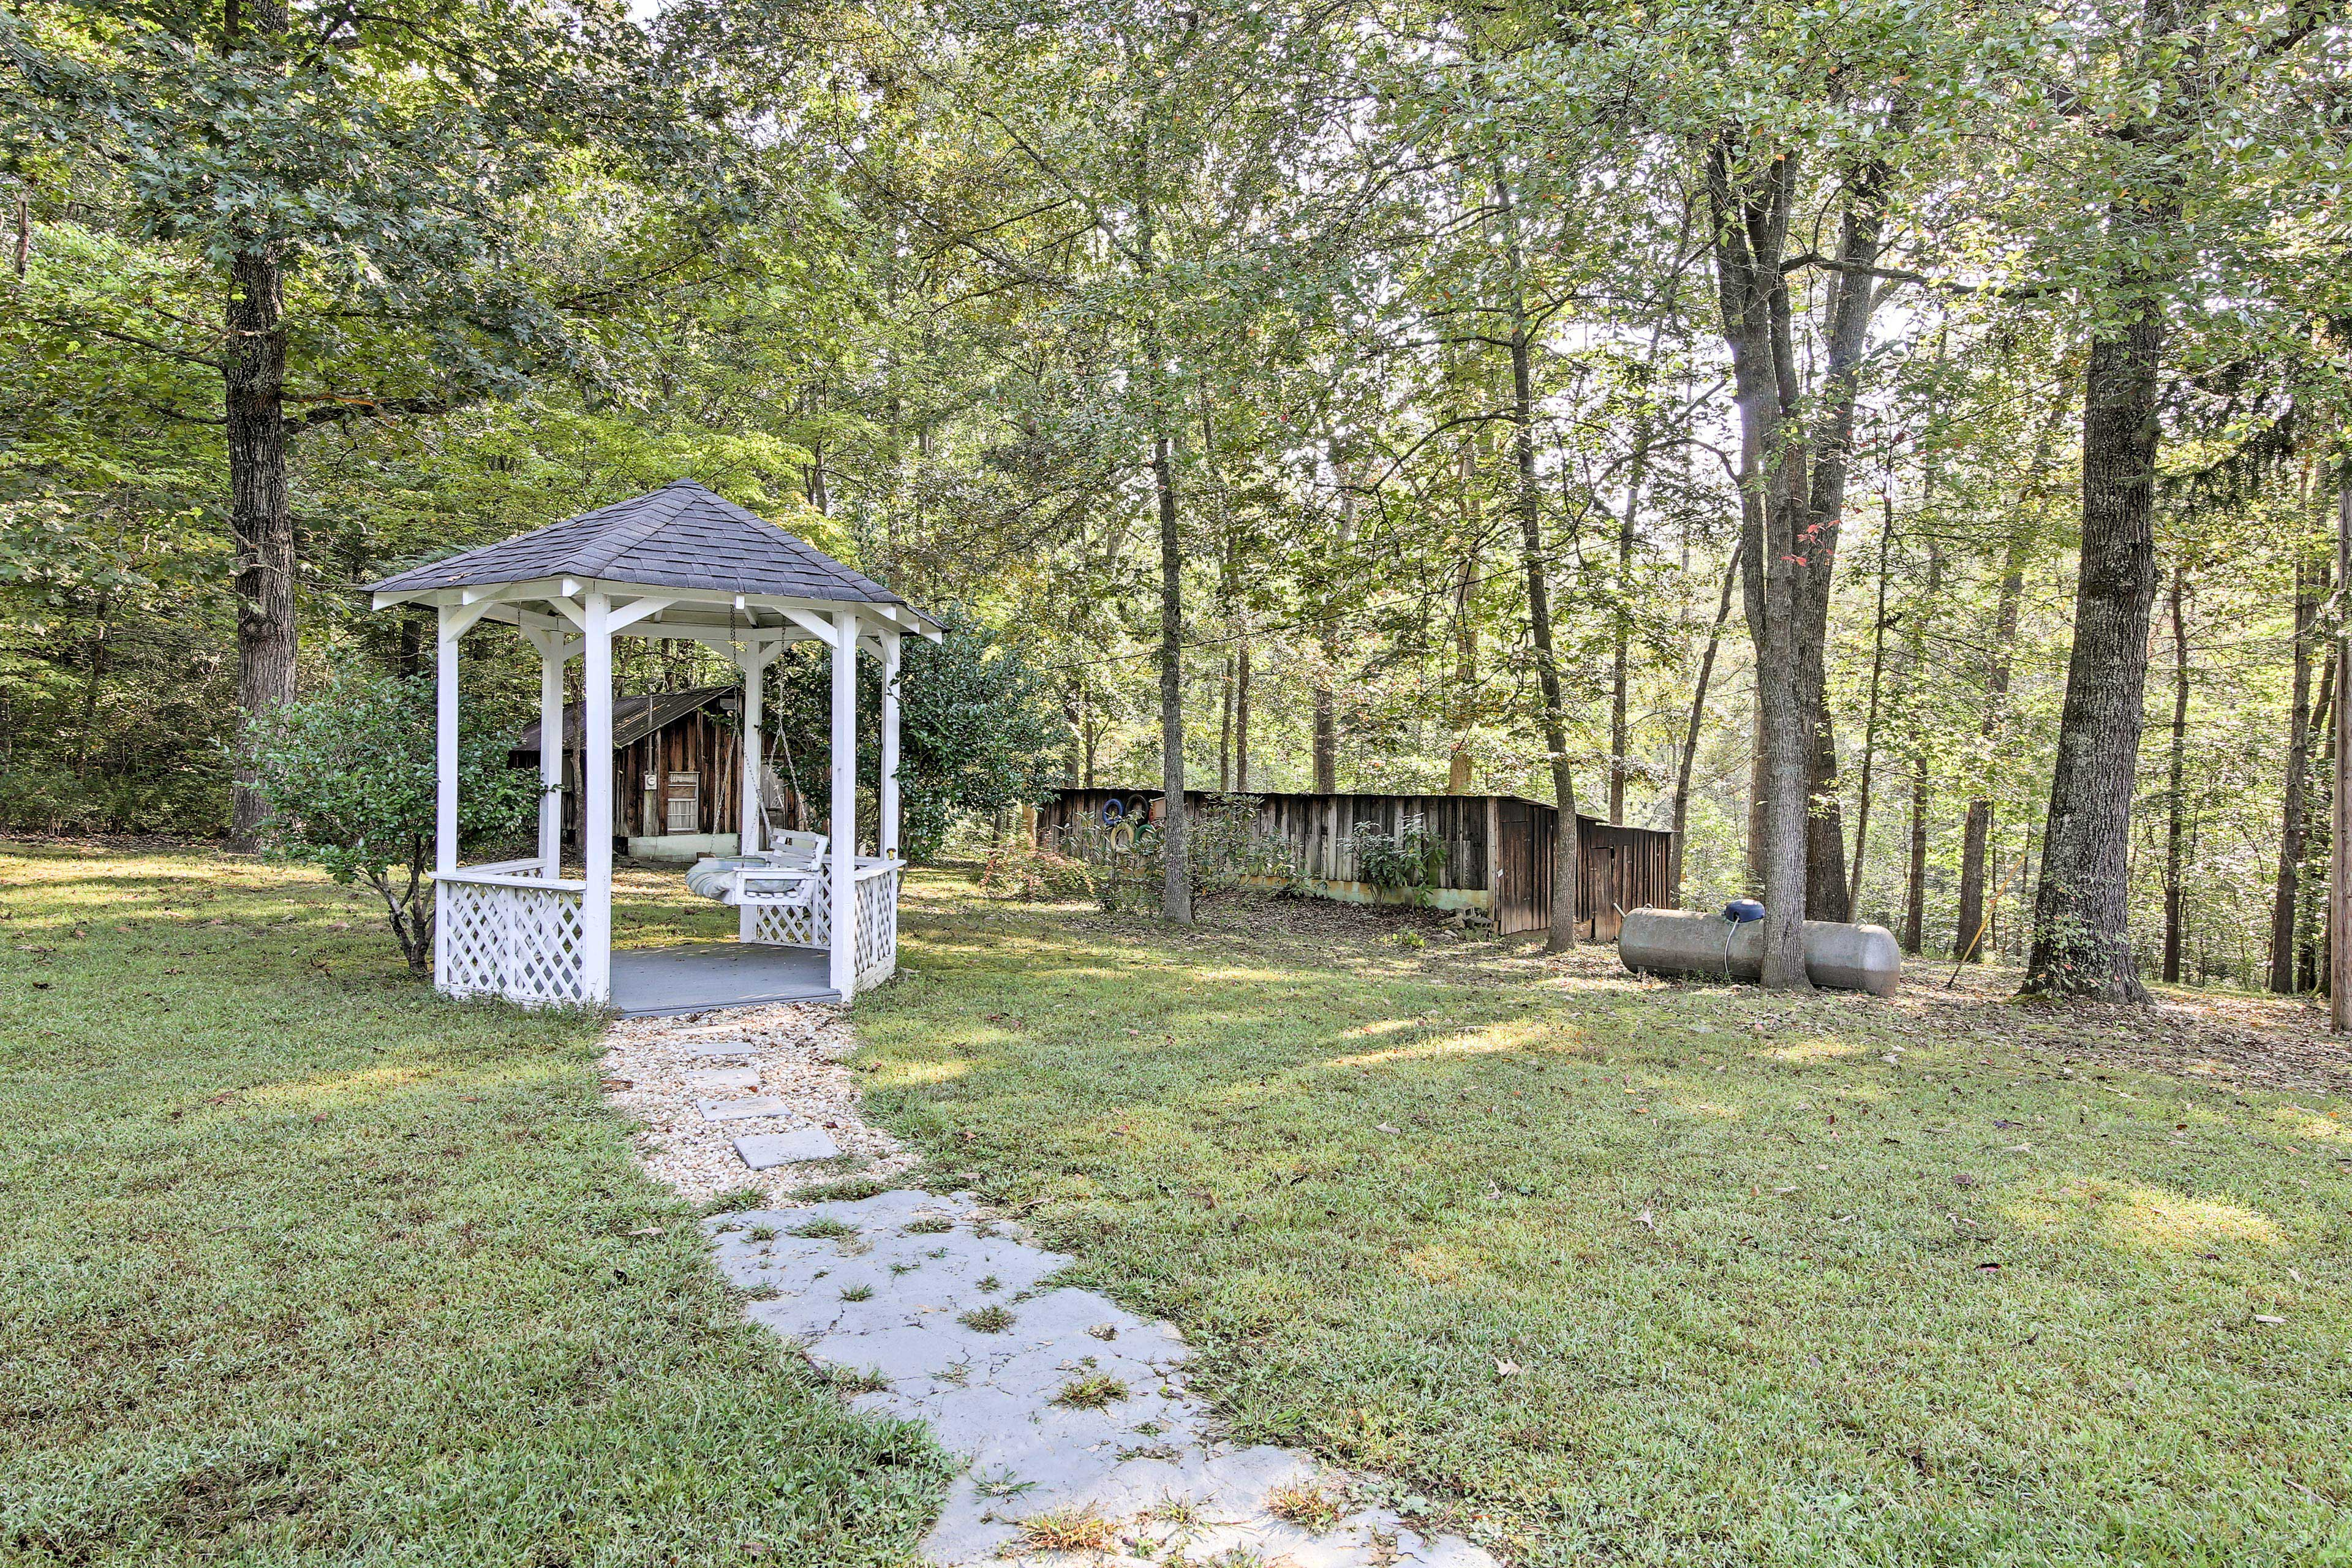 Stroll over to the gazebo to do some reading on the swinging seat.